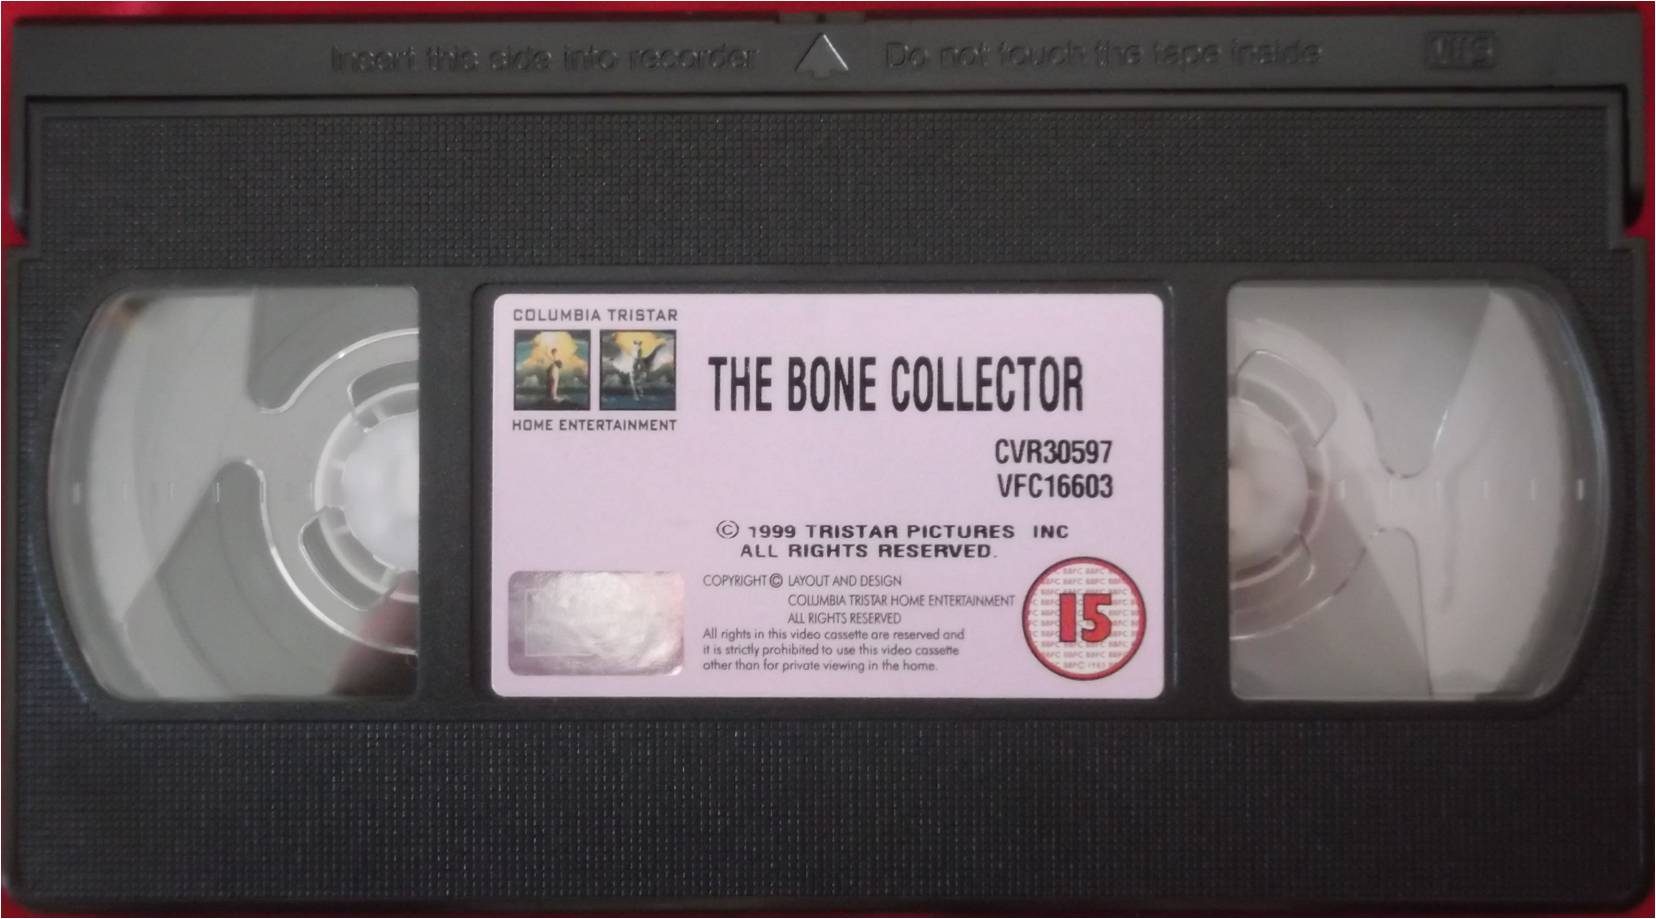 Columbia TriStar Home Video 2000 VHS Tape Example